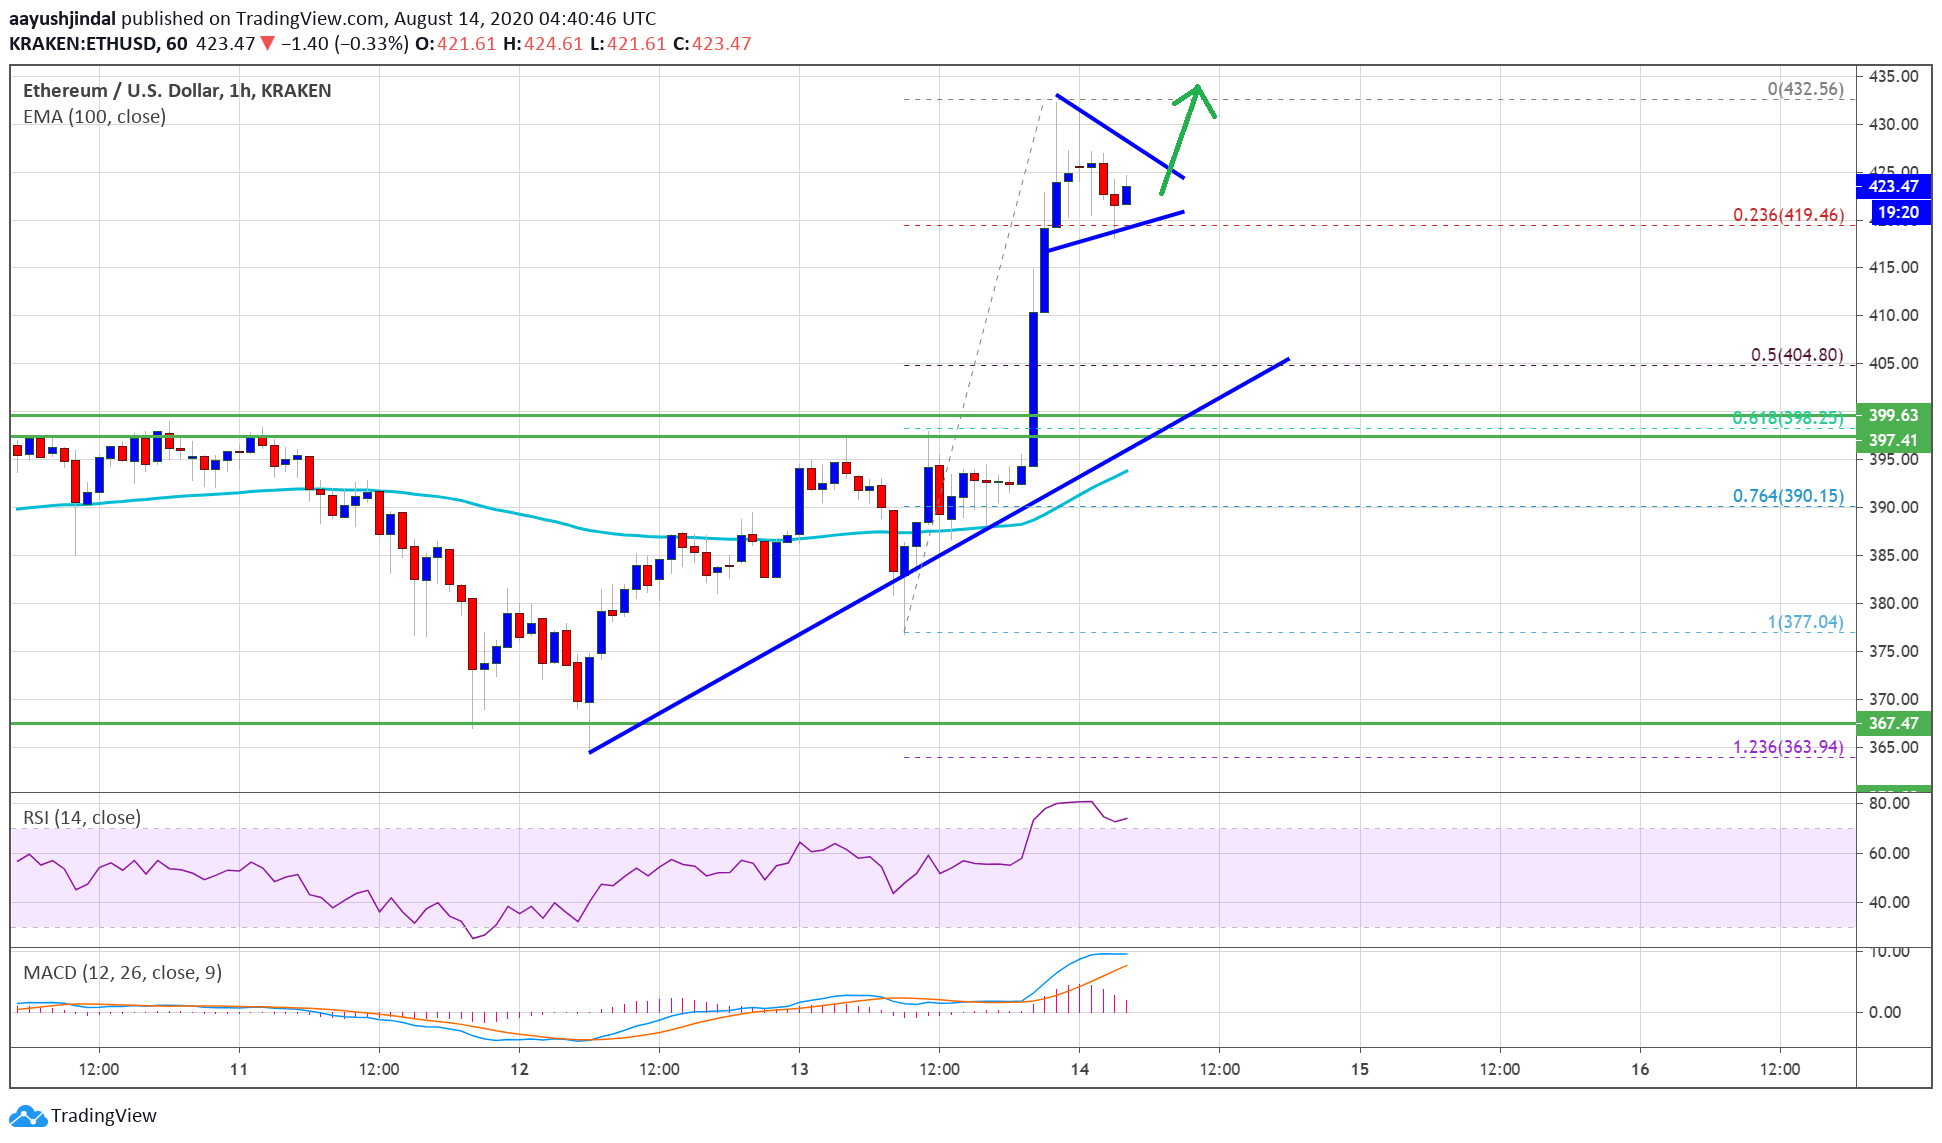 Ethereum Price Soars To New 2-Year High: Uptrend Isn't Over Yet